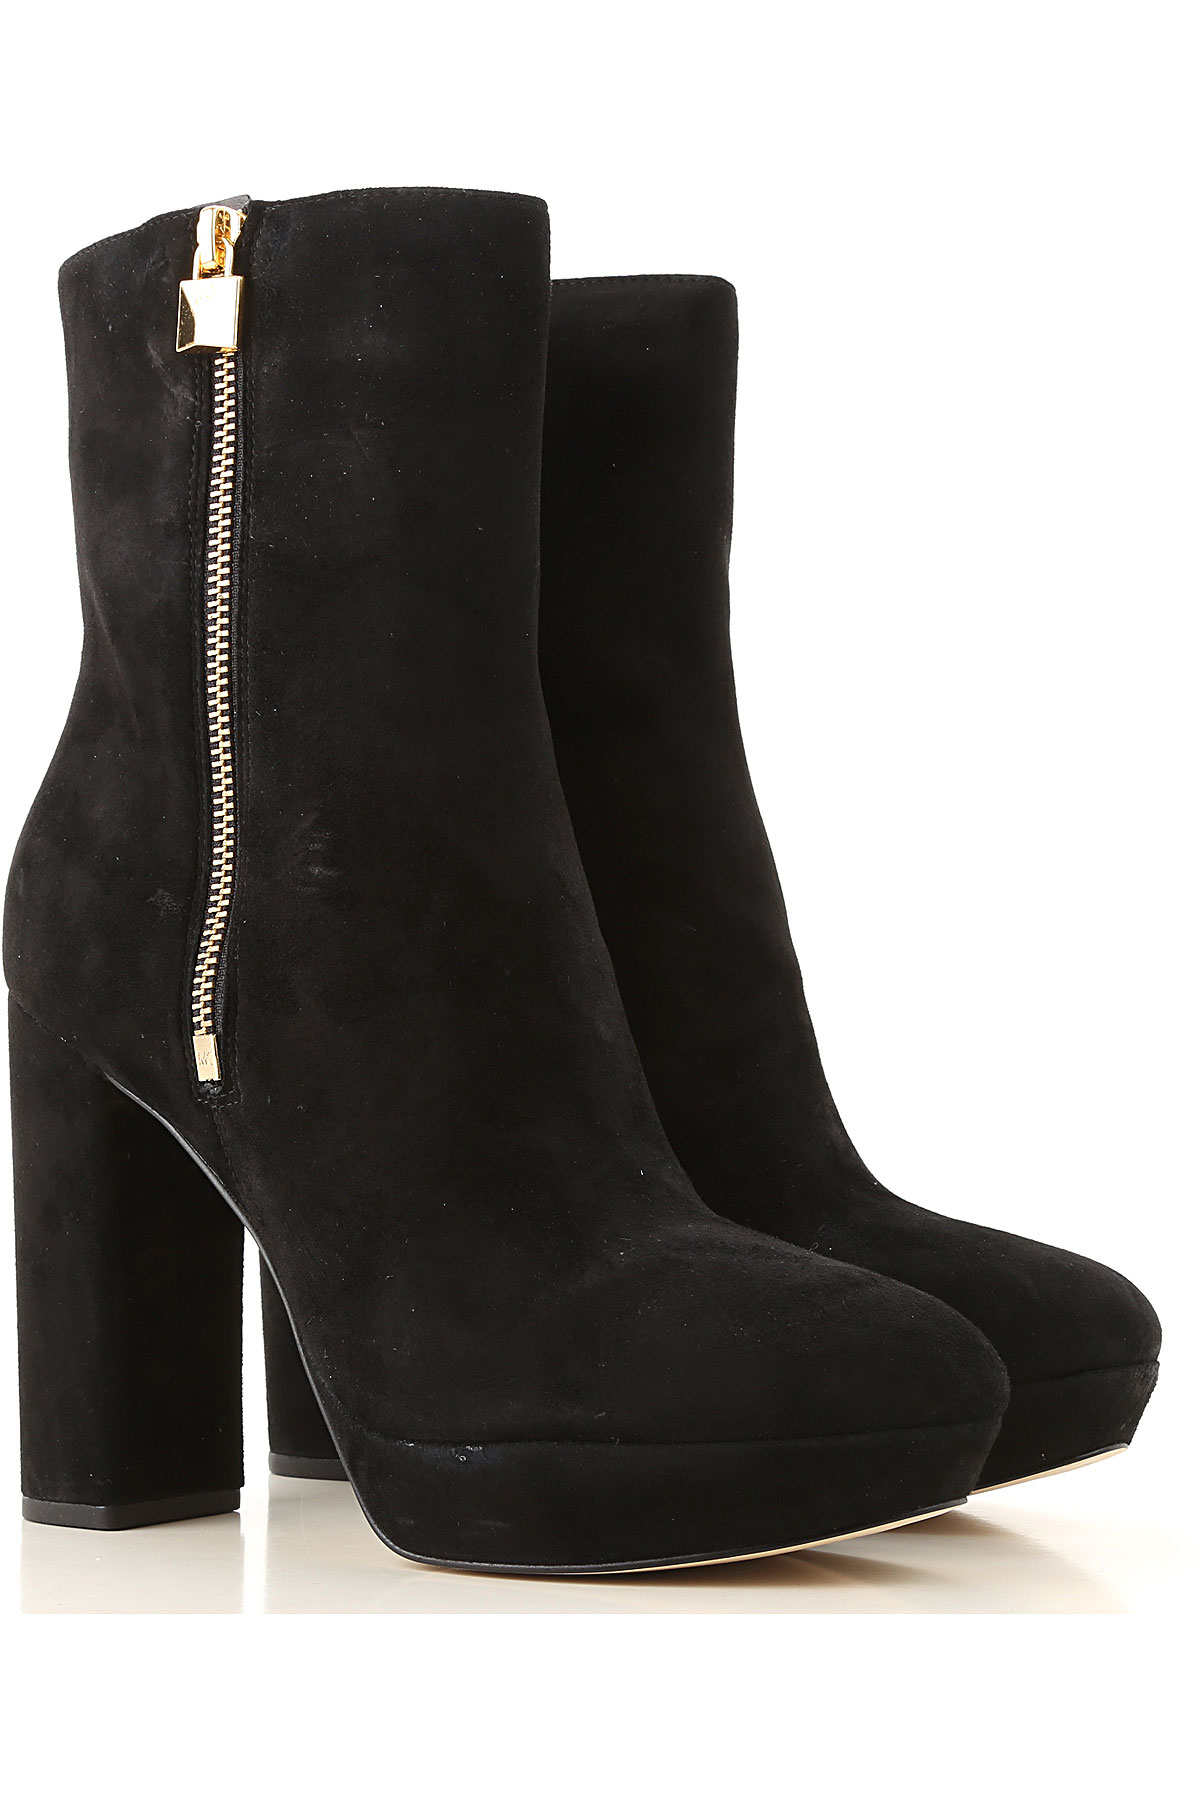 Michael Kors Boots for Women, Booties On Sale, Black, Suede leather, 2019, 10 6 7 8 8.5 9